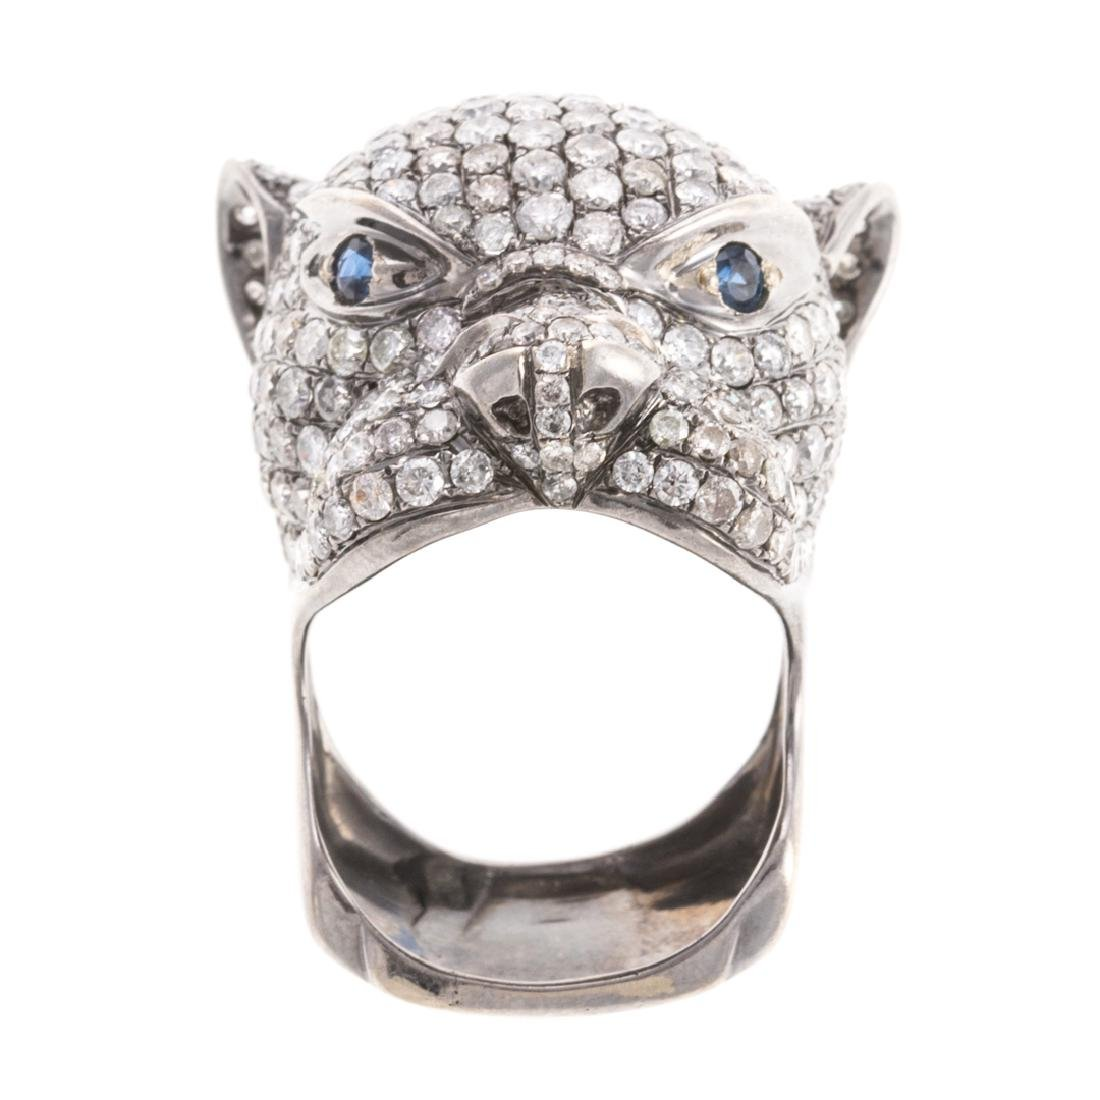 A Diamond Panther Ring in 18K Gold